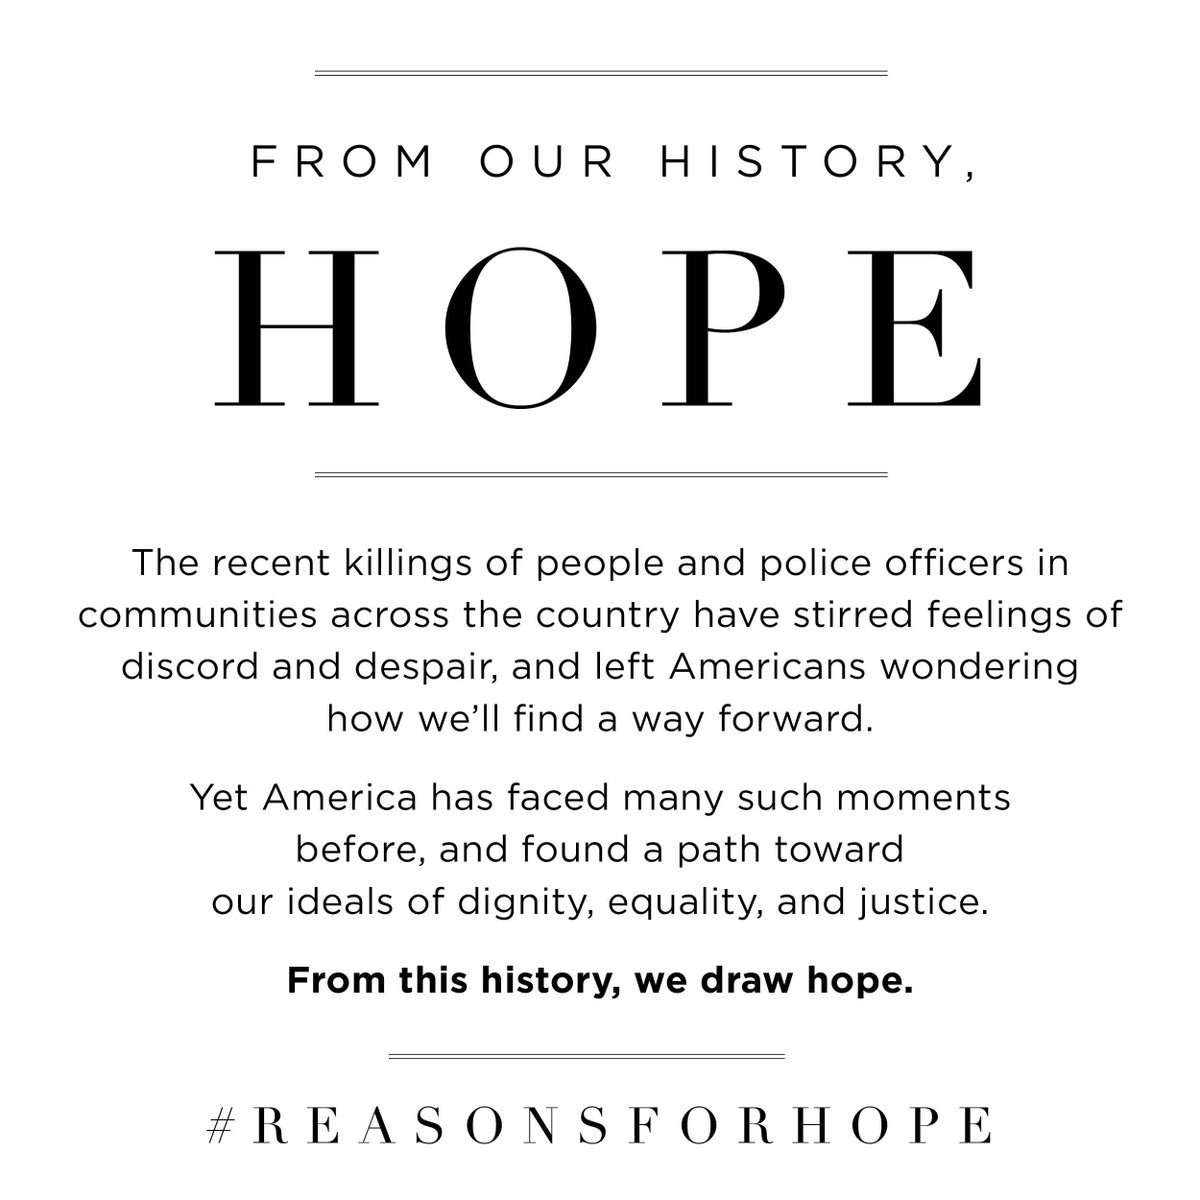 Did you see today's ad in the @washingtonpost & @nytimes? We're full of hope! What inspires you? #ReasonsForHope https://t.co/RqRveArirp